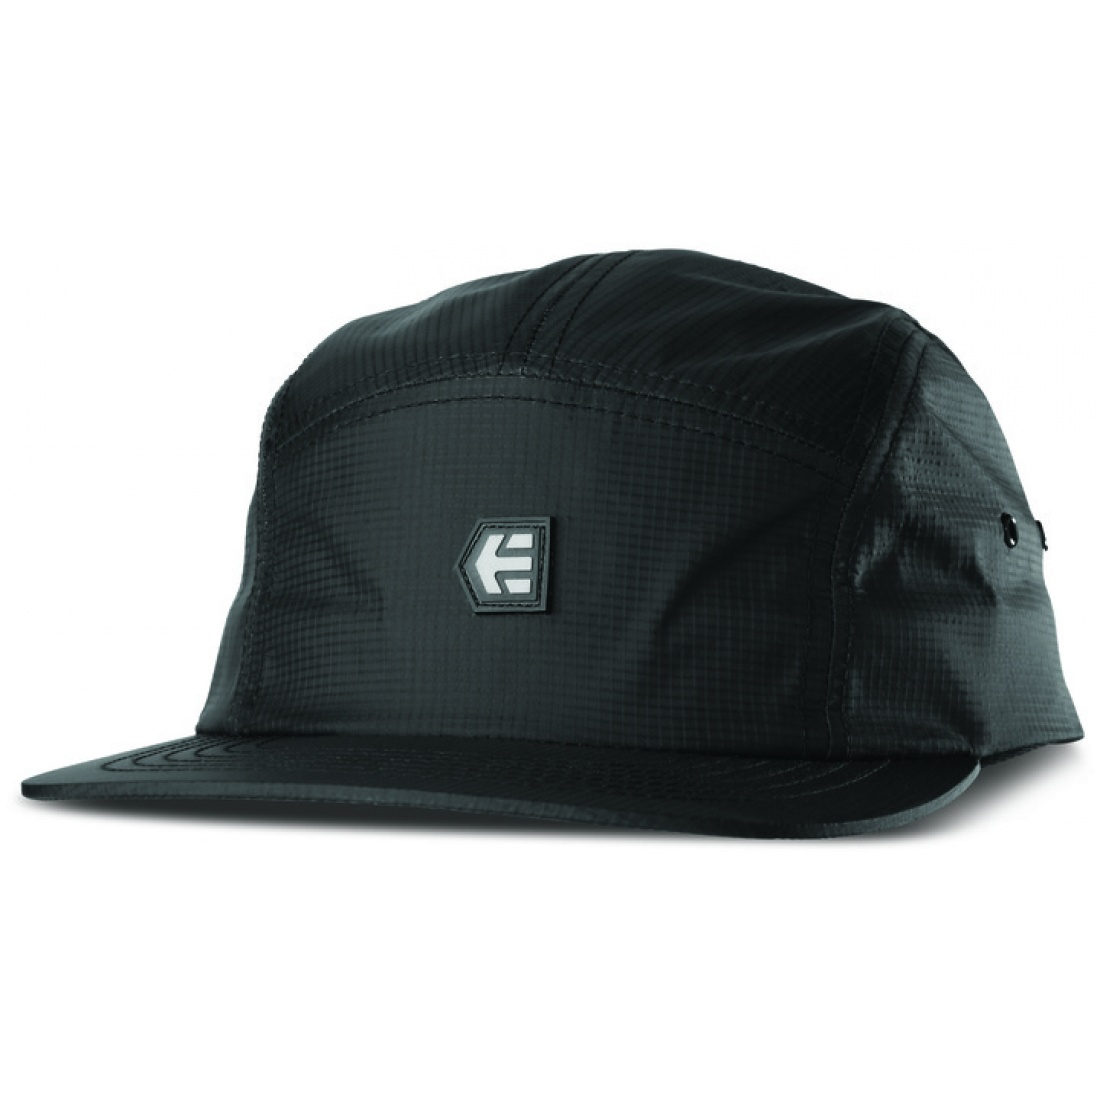 ETN-Liniar 5 Panel Black Hat